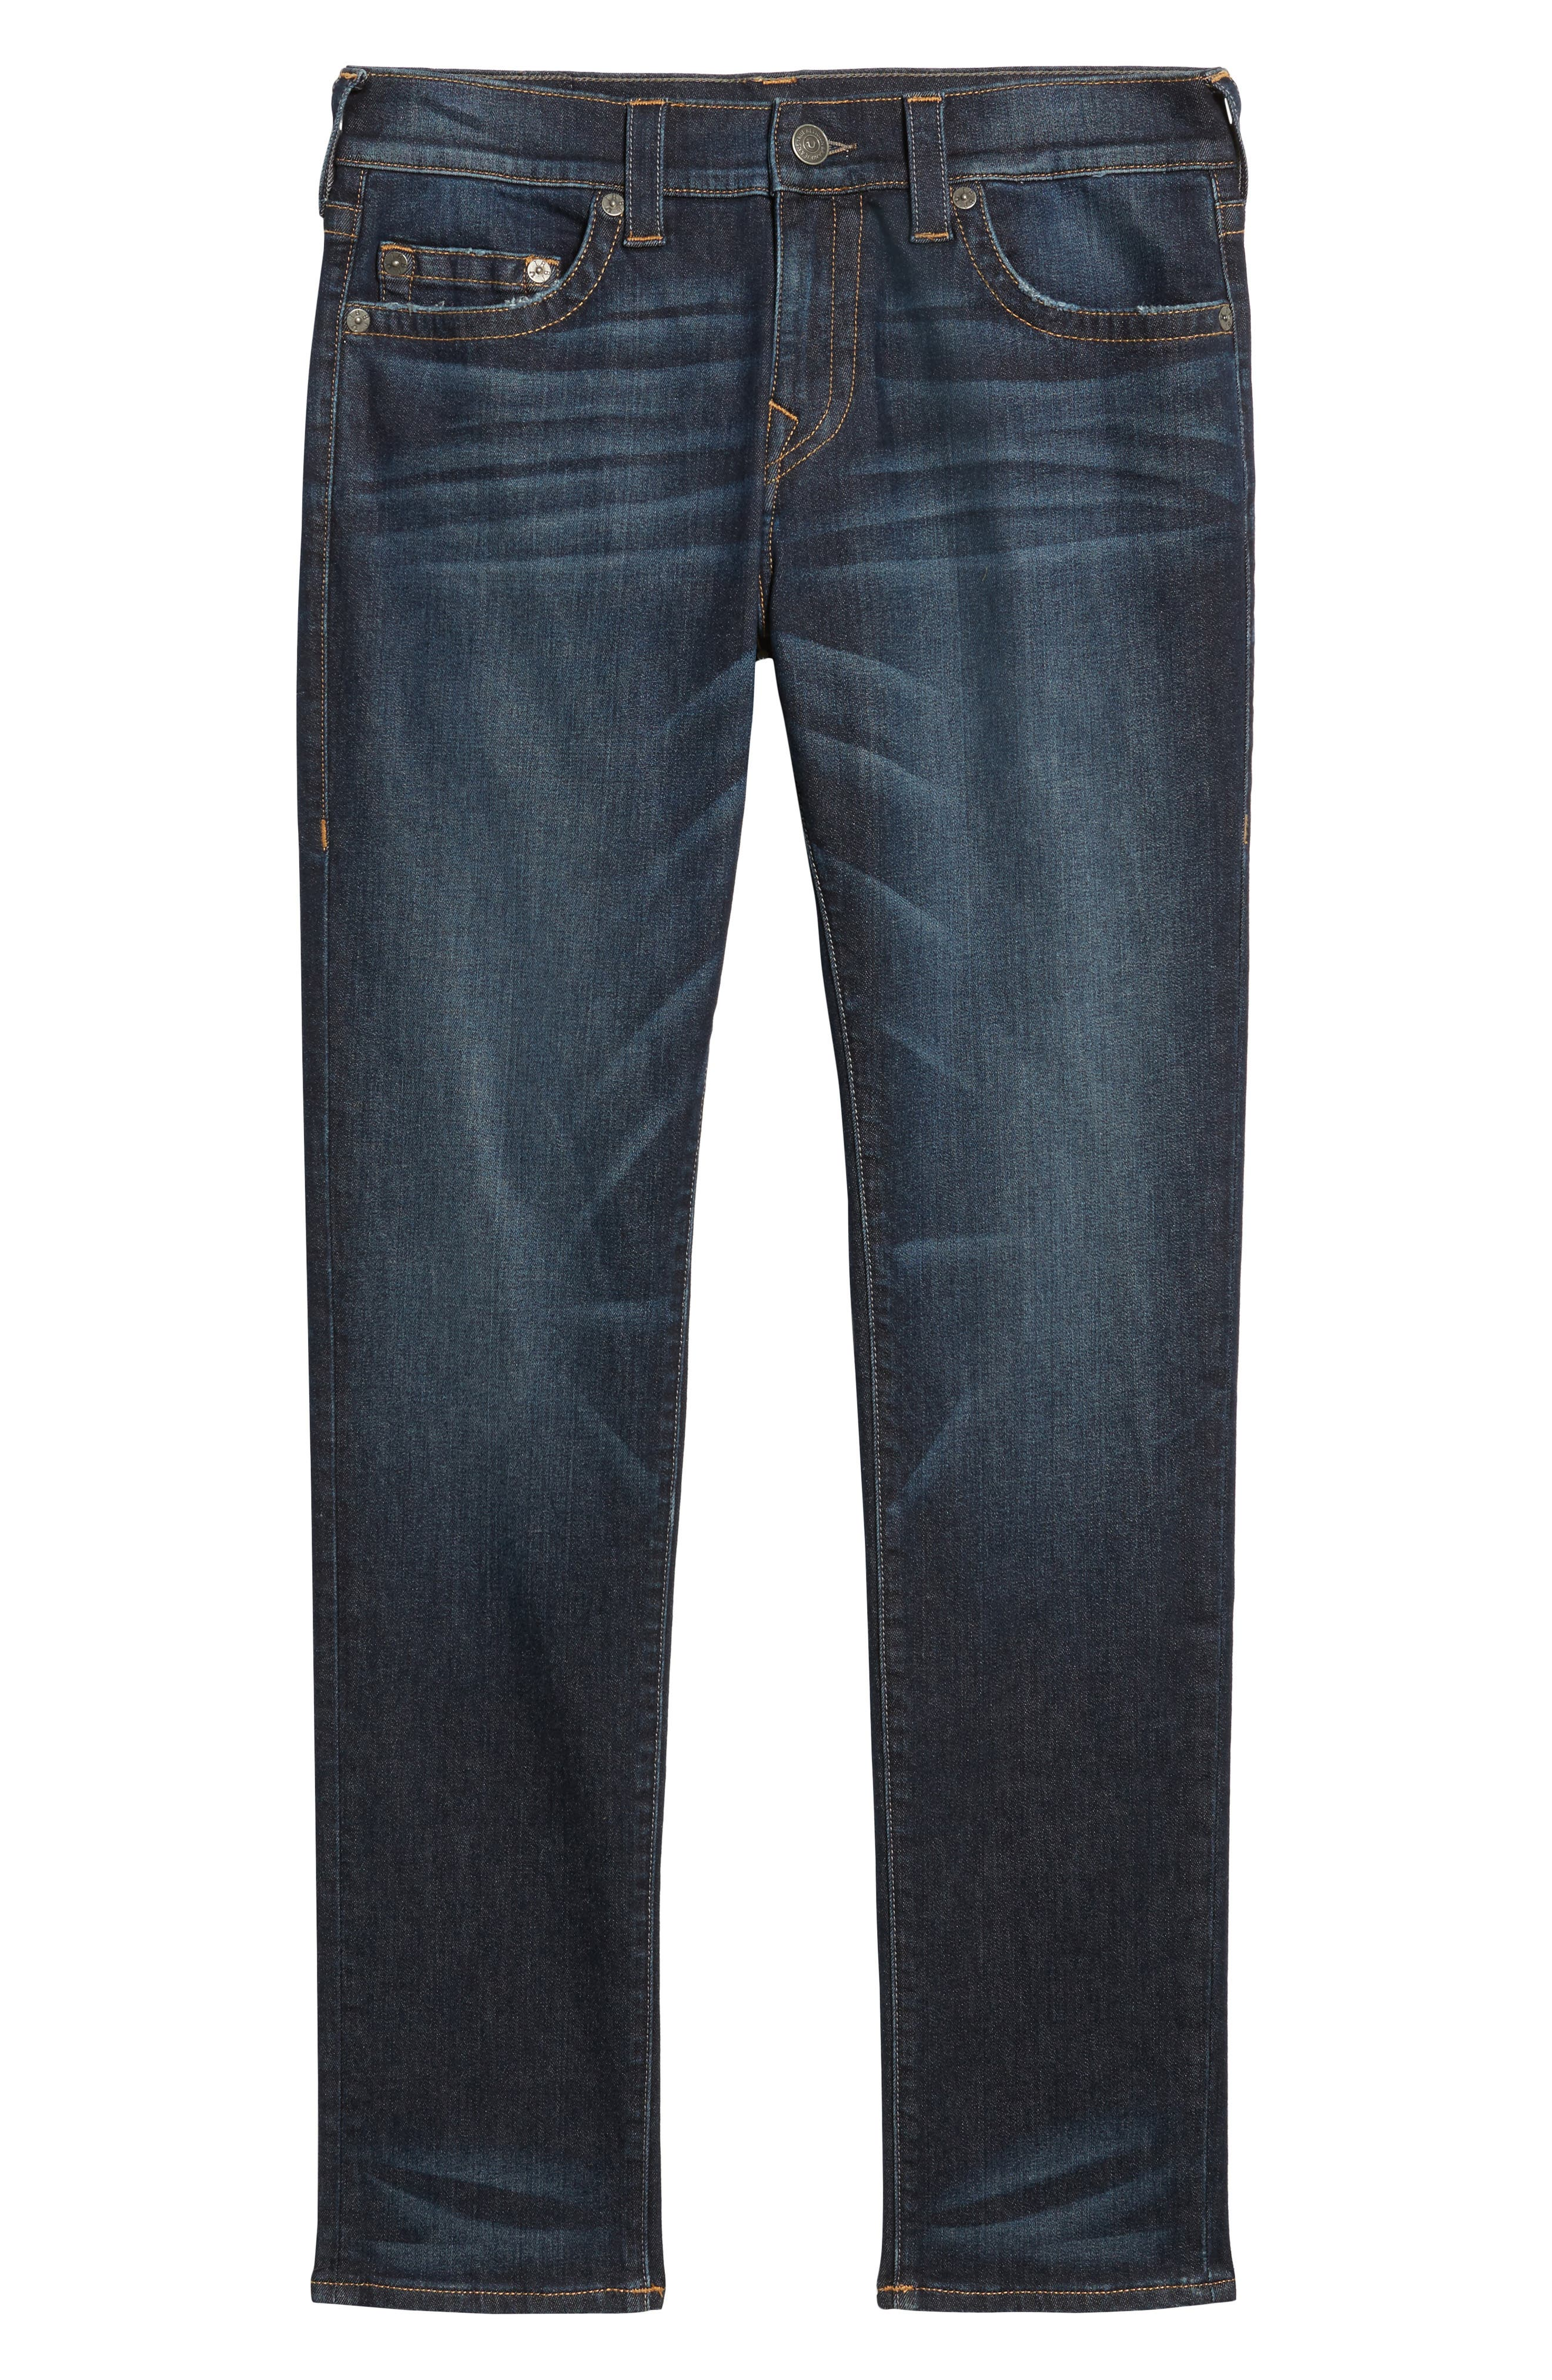 Rocco Skinny Fit Jeans,                             Alternate thumbnail 6, color,                             Dark Indigo Luxe